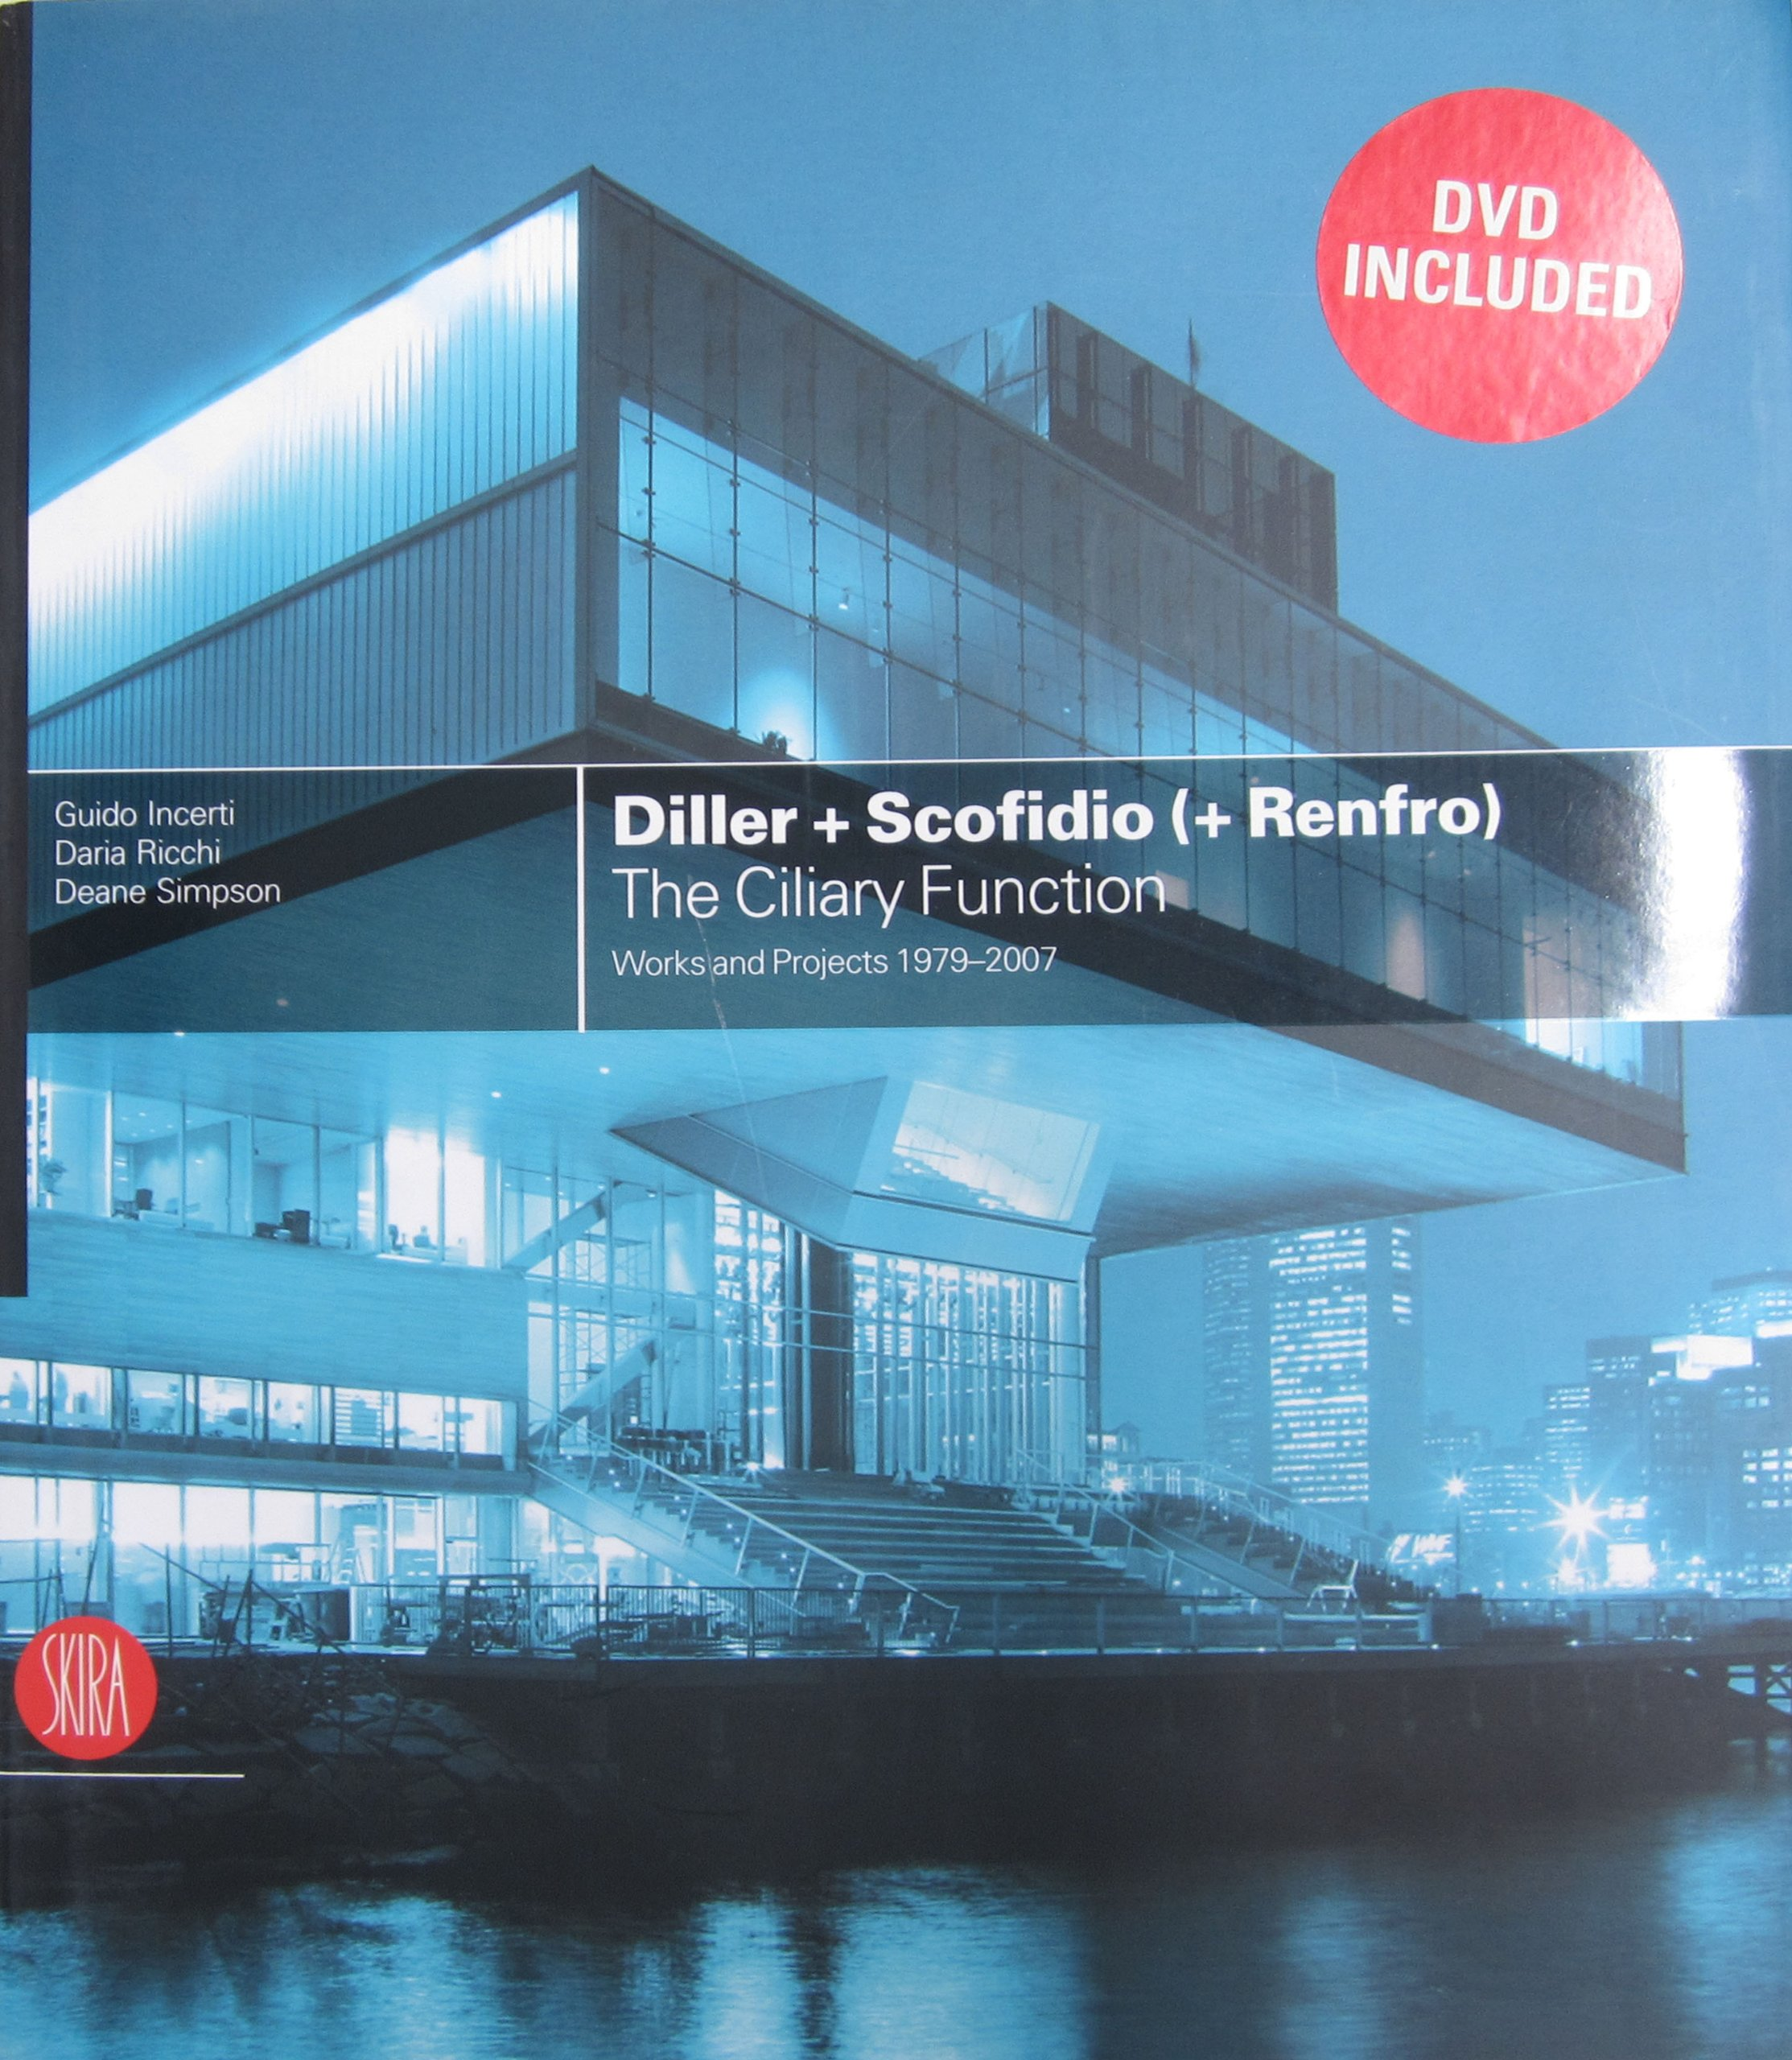 Diller + Scofidio (+ Renfro): The Ciliary Function: Guido